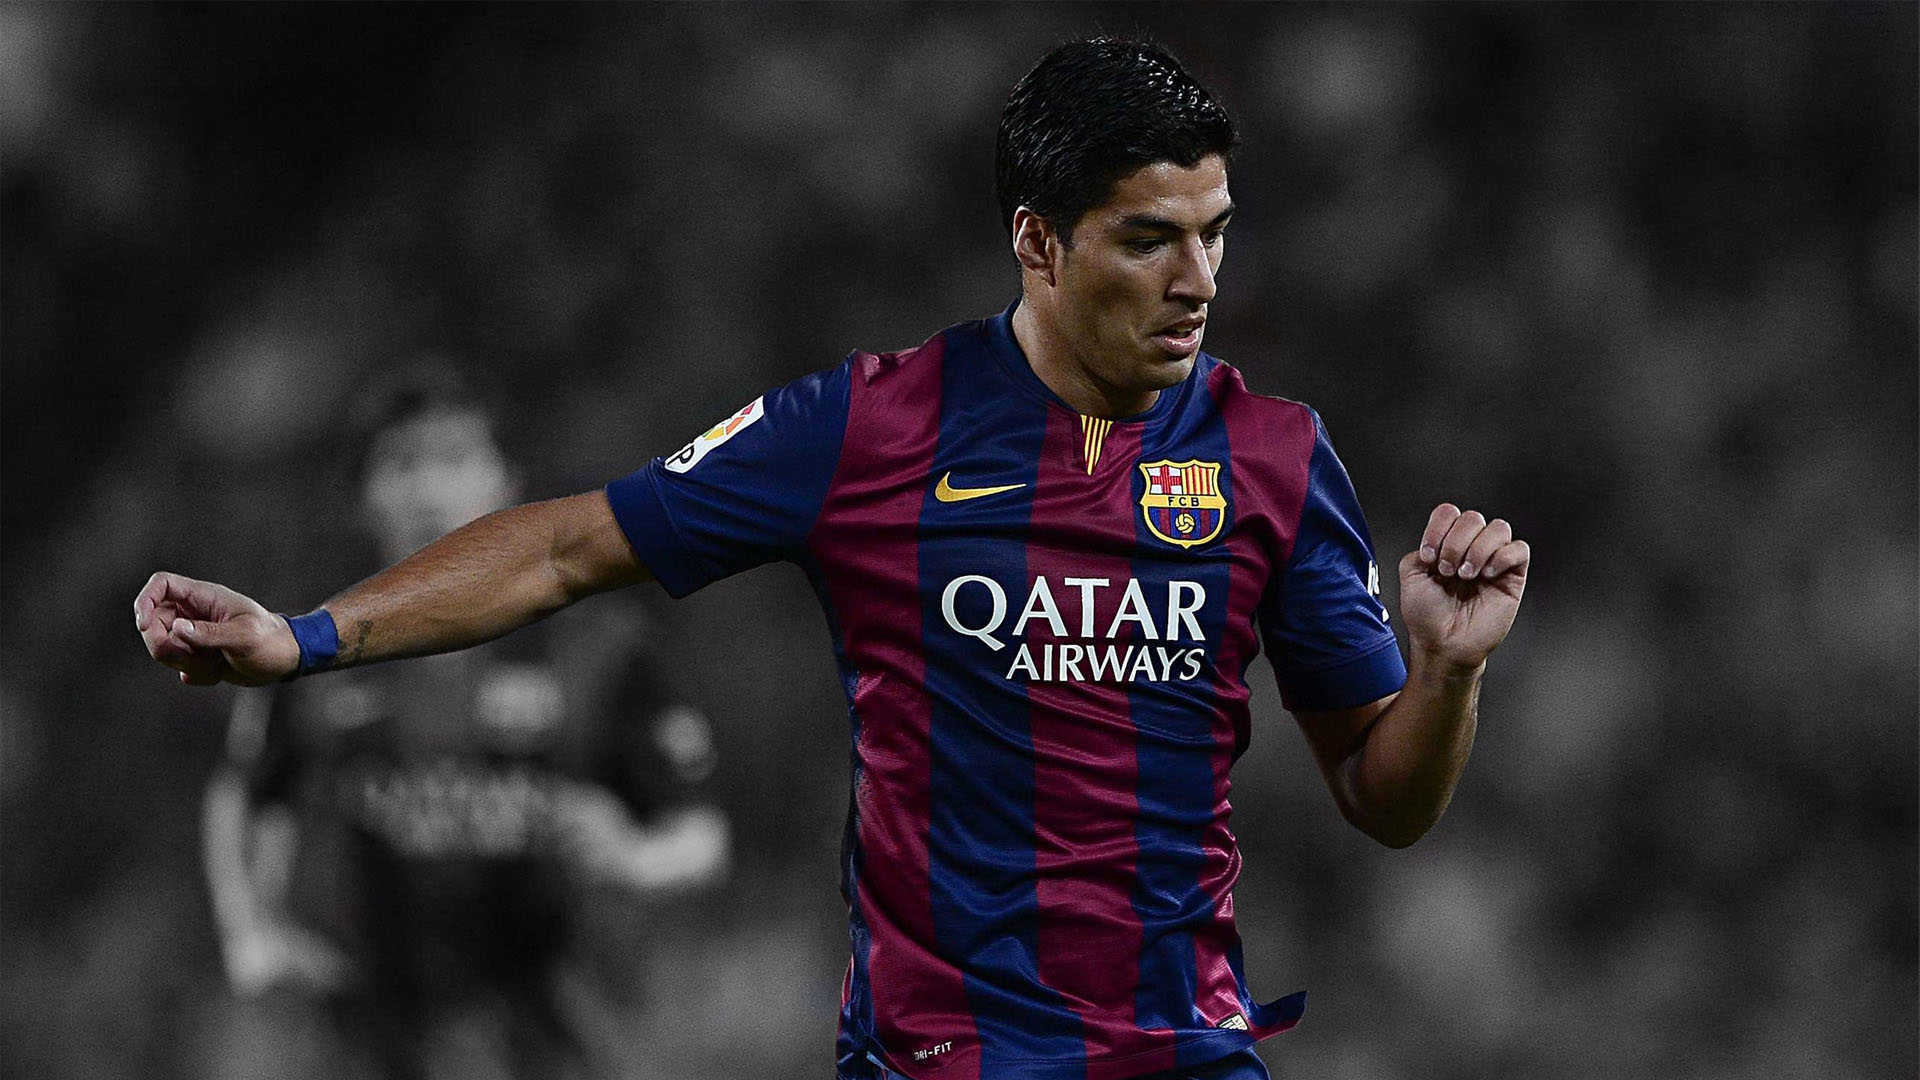 hd luis suarez football soccer player free background mobile desktop download images